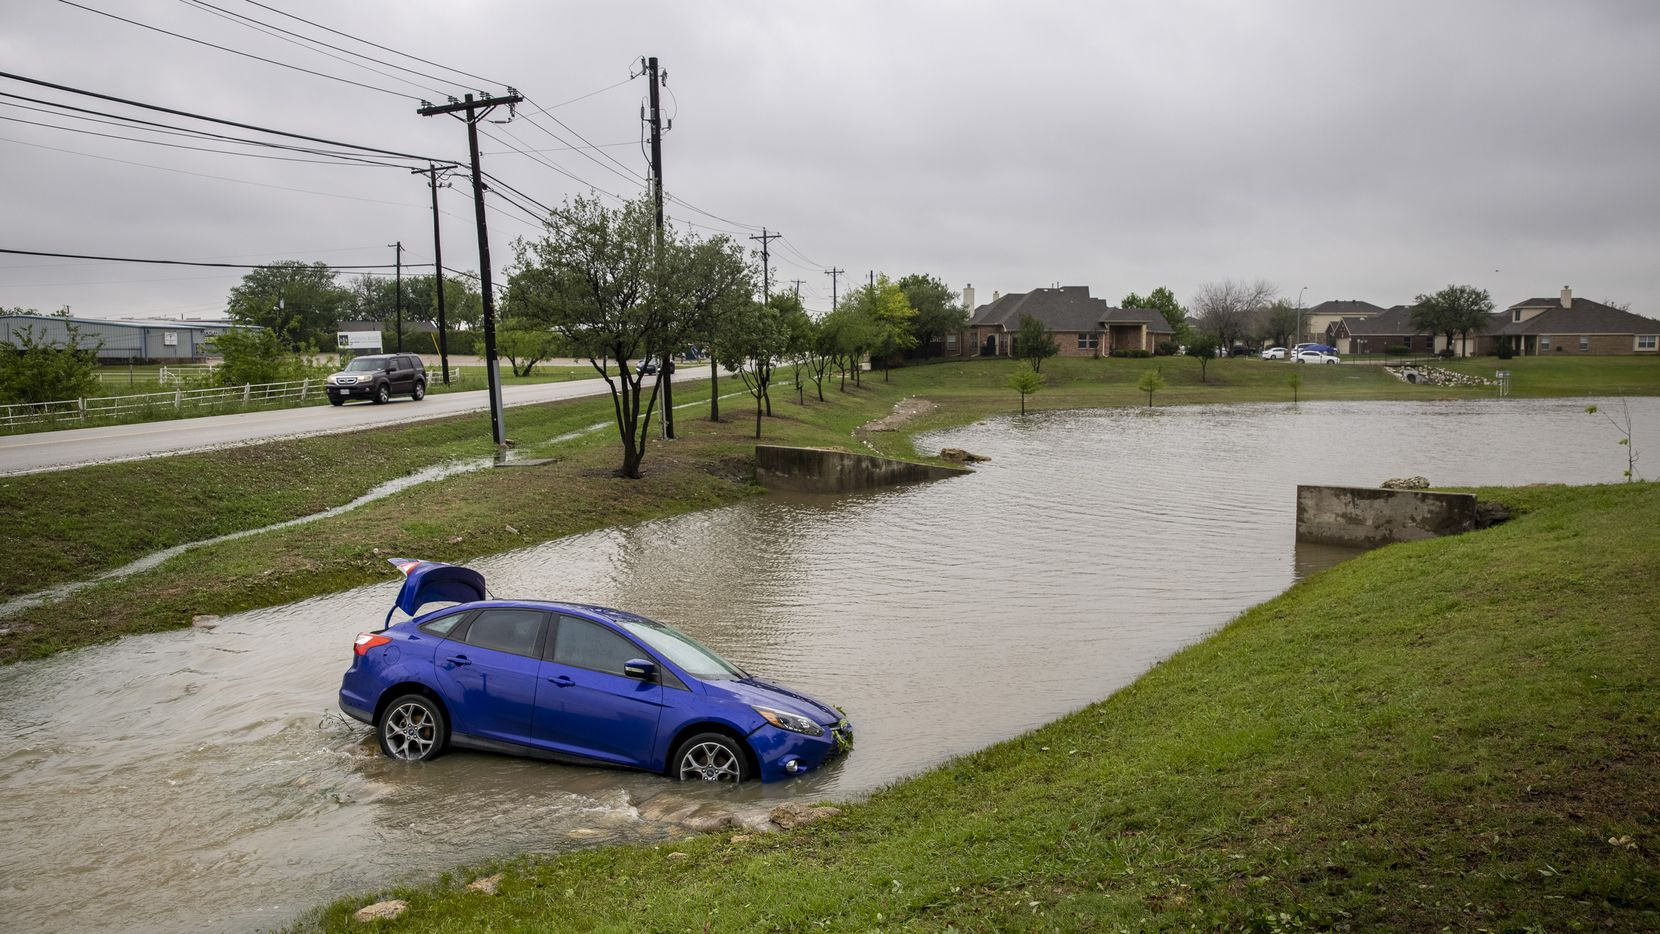 Following a severe storm Thursday night, water rushes past a car whose drive had landed in the creek at The Villages of Woodland Springs in Keller, Texas, on Thursday, April 29, 2021. A neighbor said the driver couldn't see where the turn was in the midst of the storm, and added that the driver was not seriously injured.